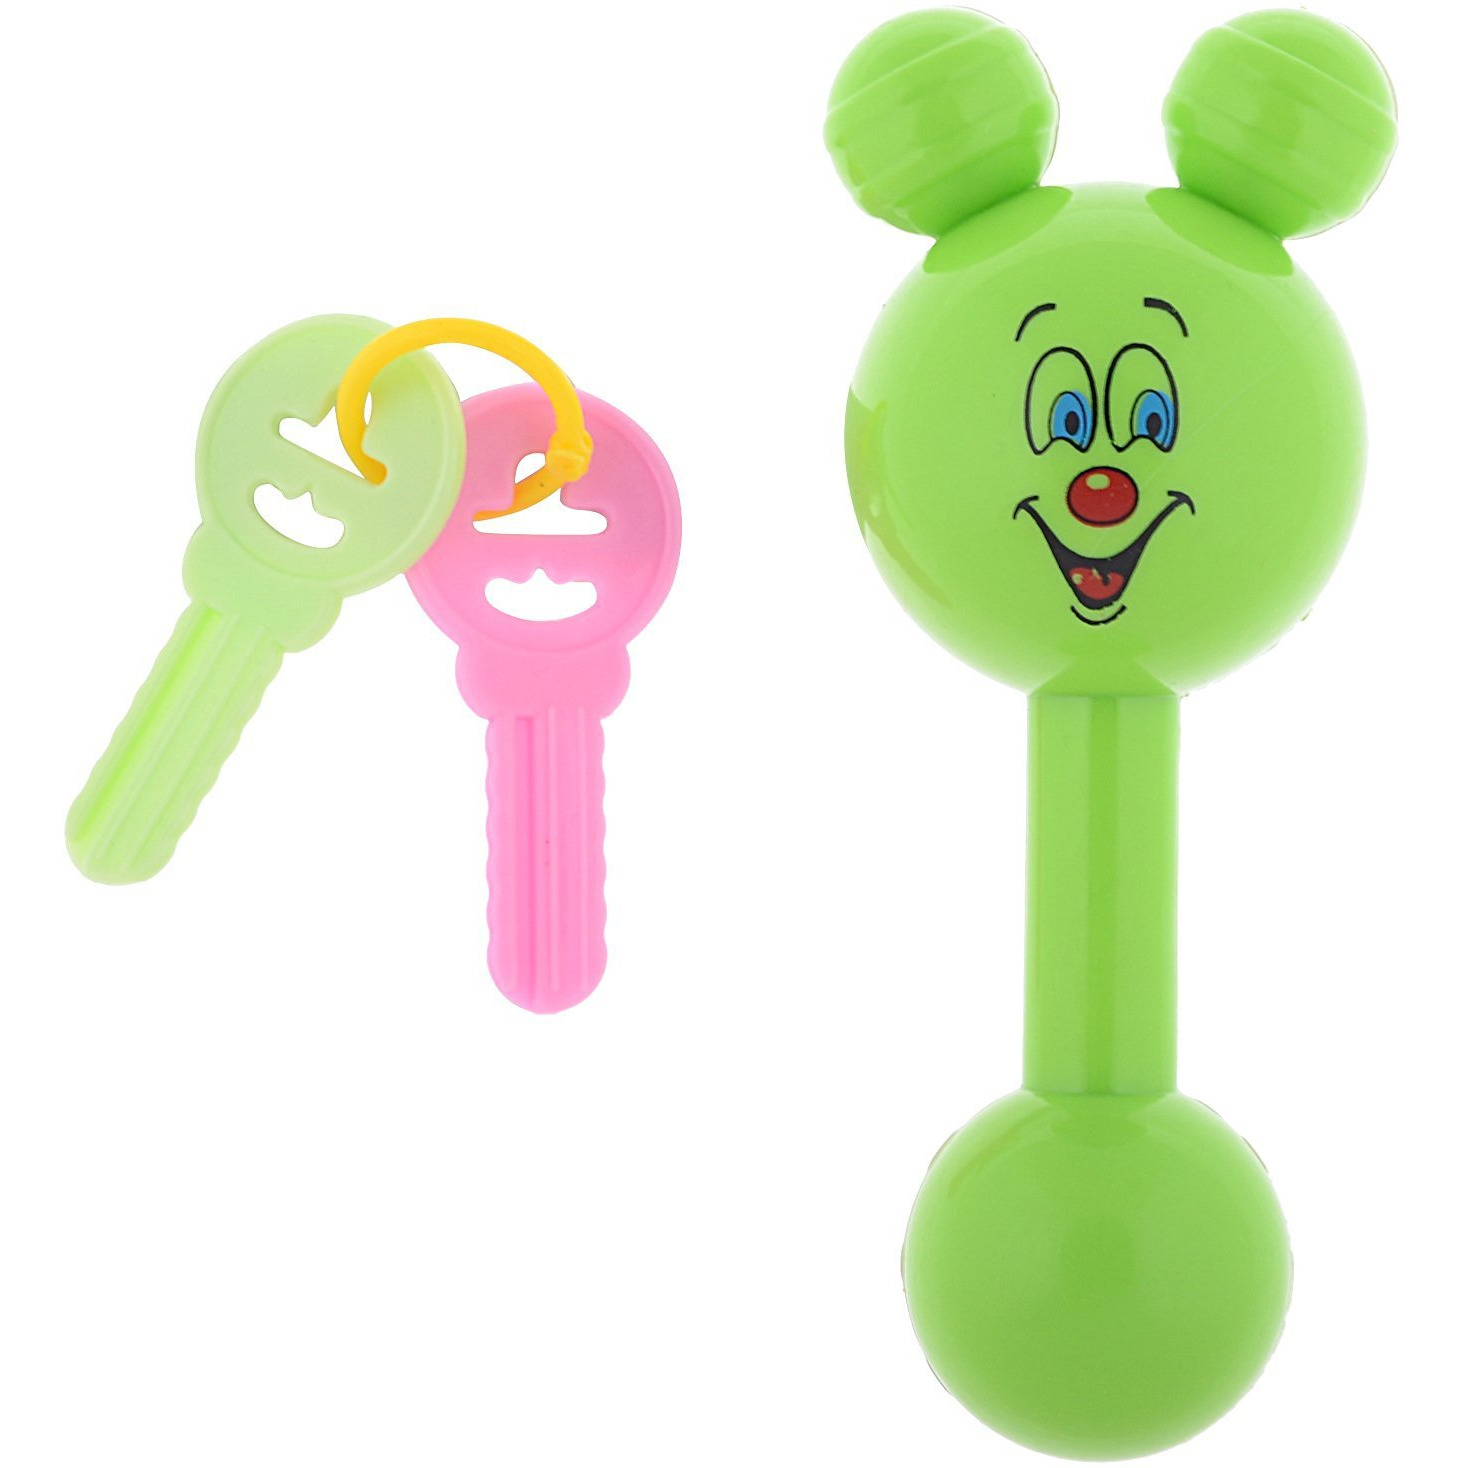 Auto Flow Rattle Toy - Jinny Toy - BT27 Green